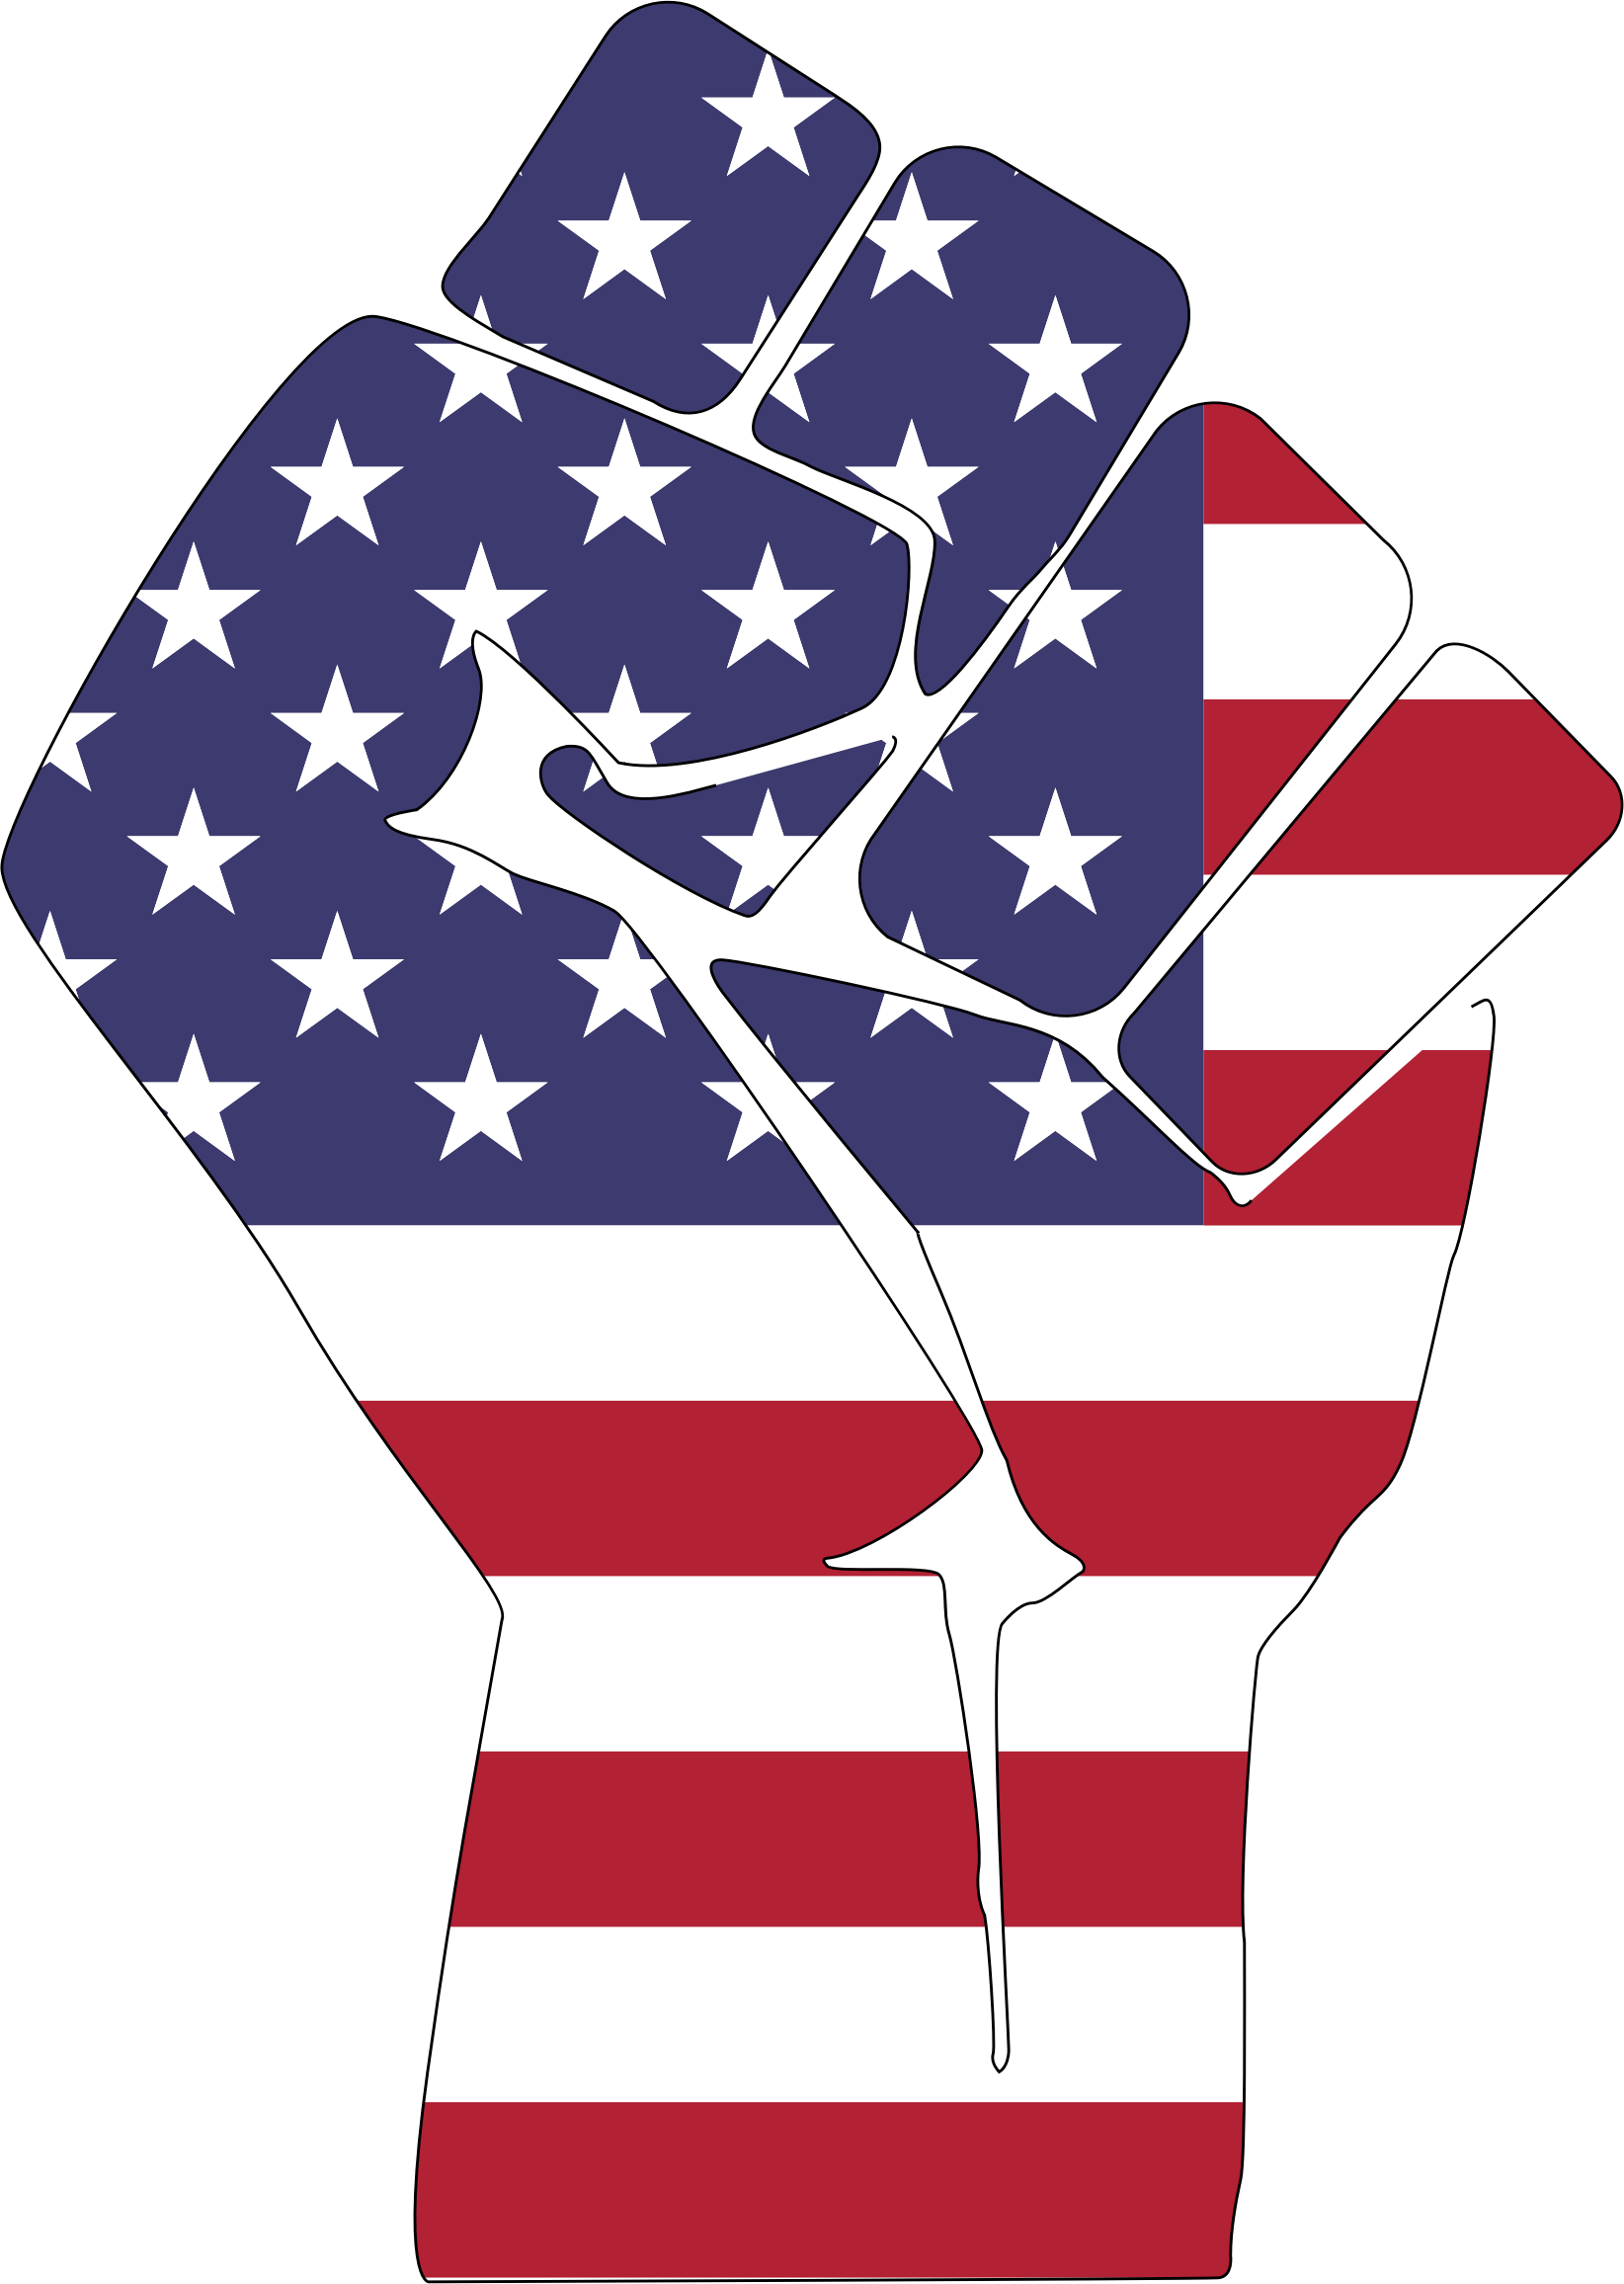 United states of america flag clipart freeuse Clipart - American Flag Fist With Stroke freeuse